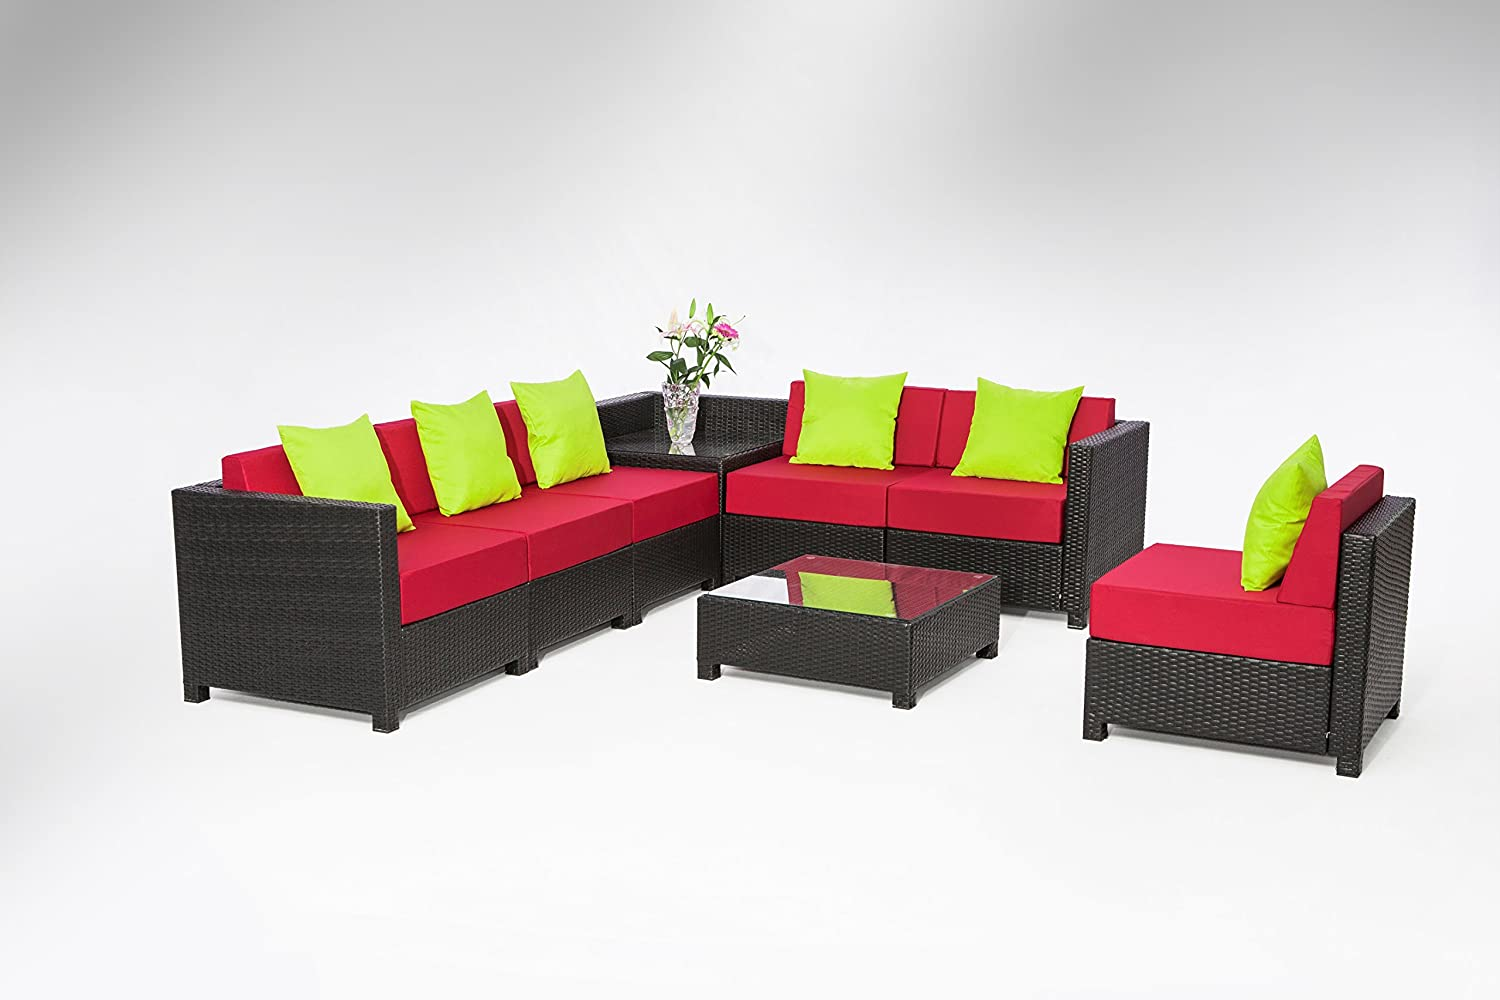 MCombo 8 pcs Luxury Black Wicker Patio Sectional Indoor Outdoor Sofa Furniture set Red